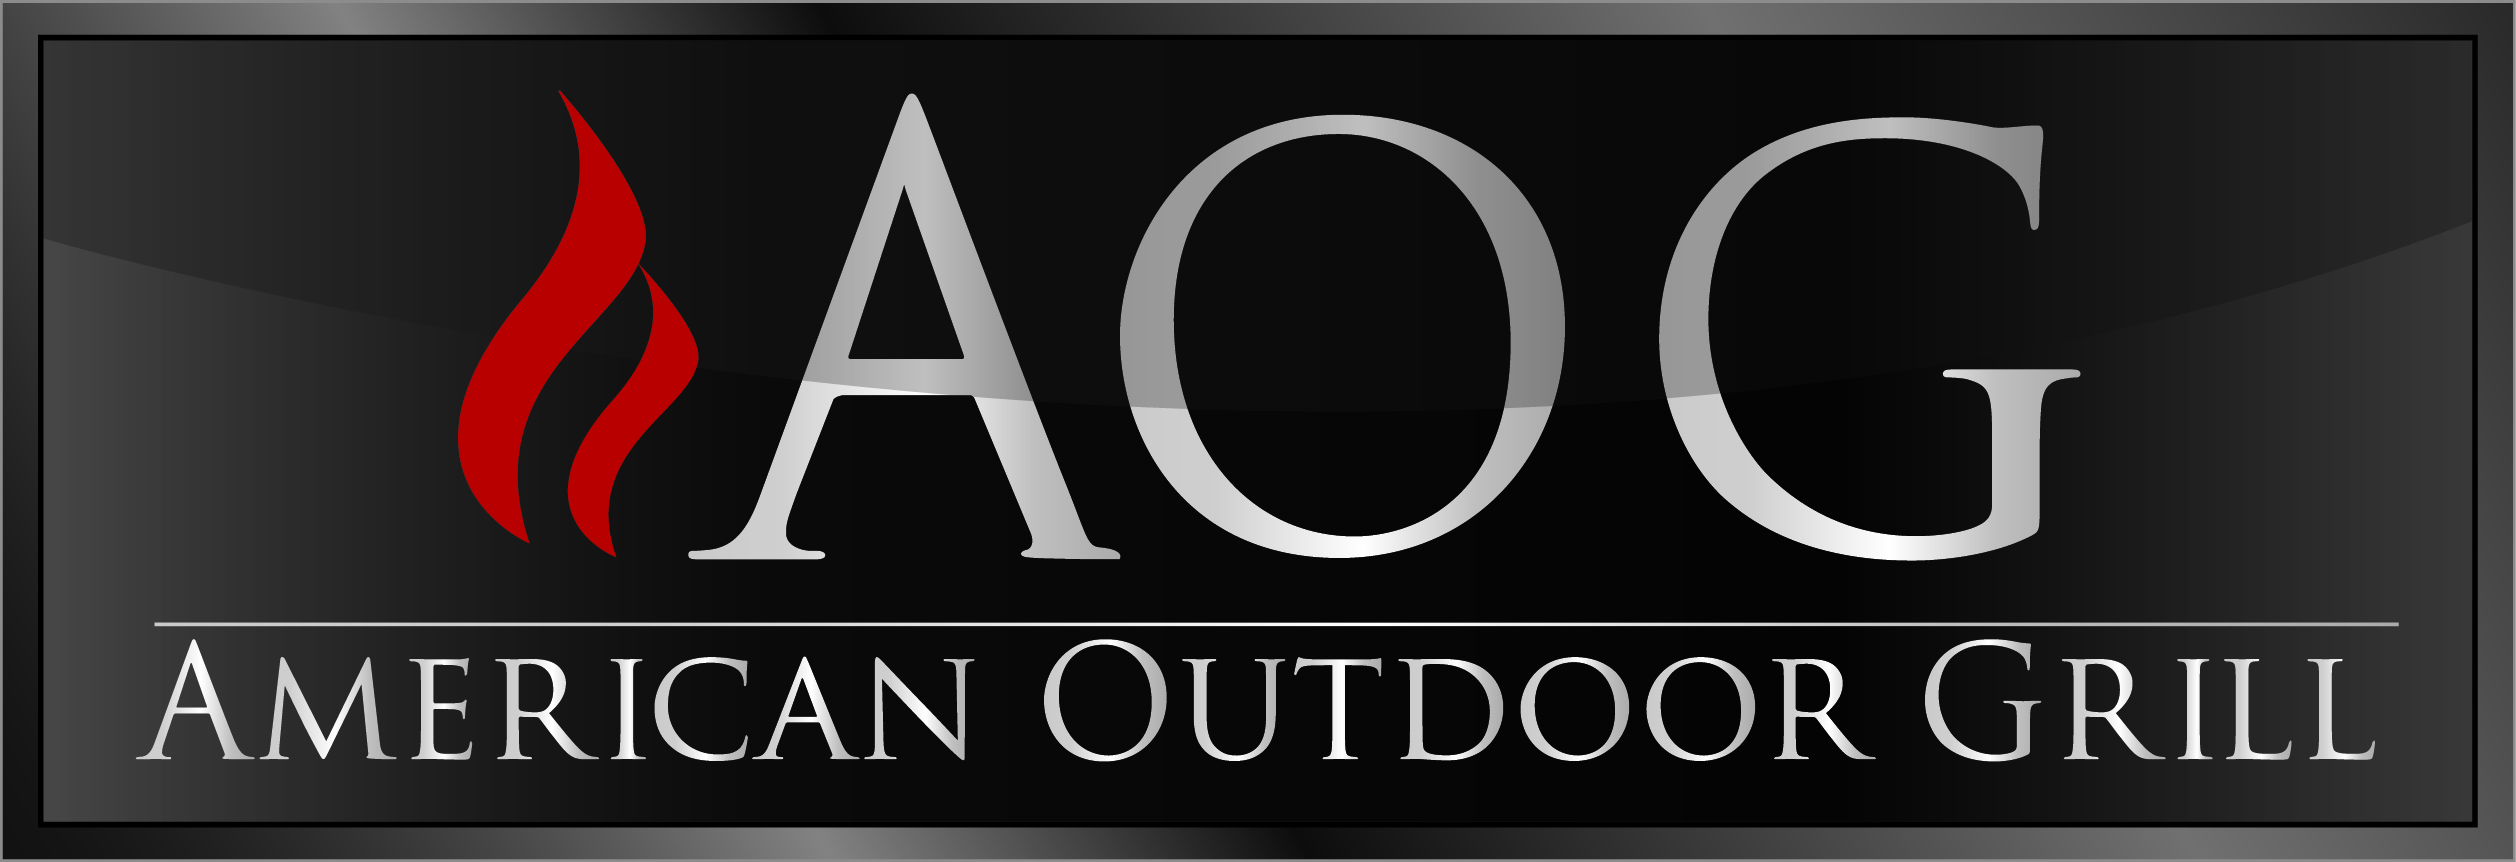 American Outdoor Grill-Logo